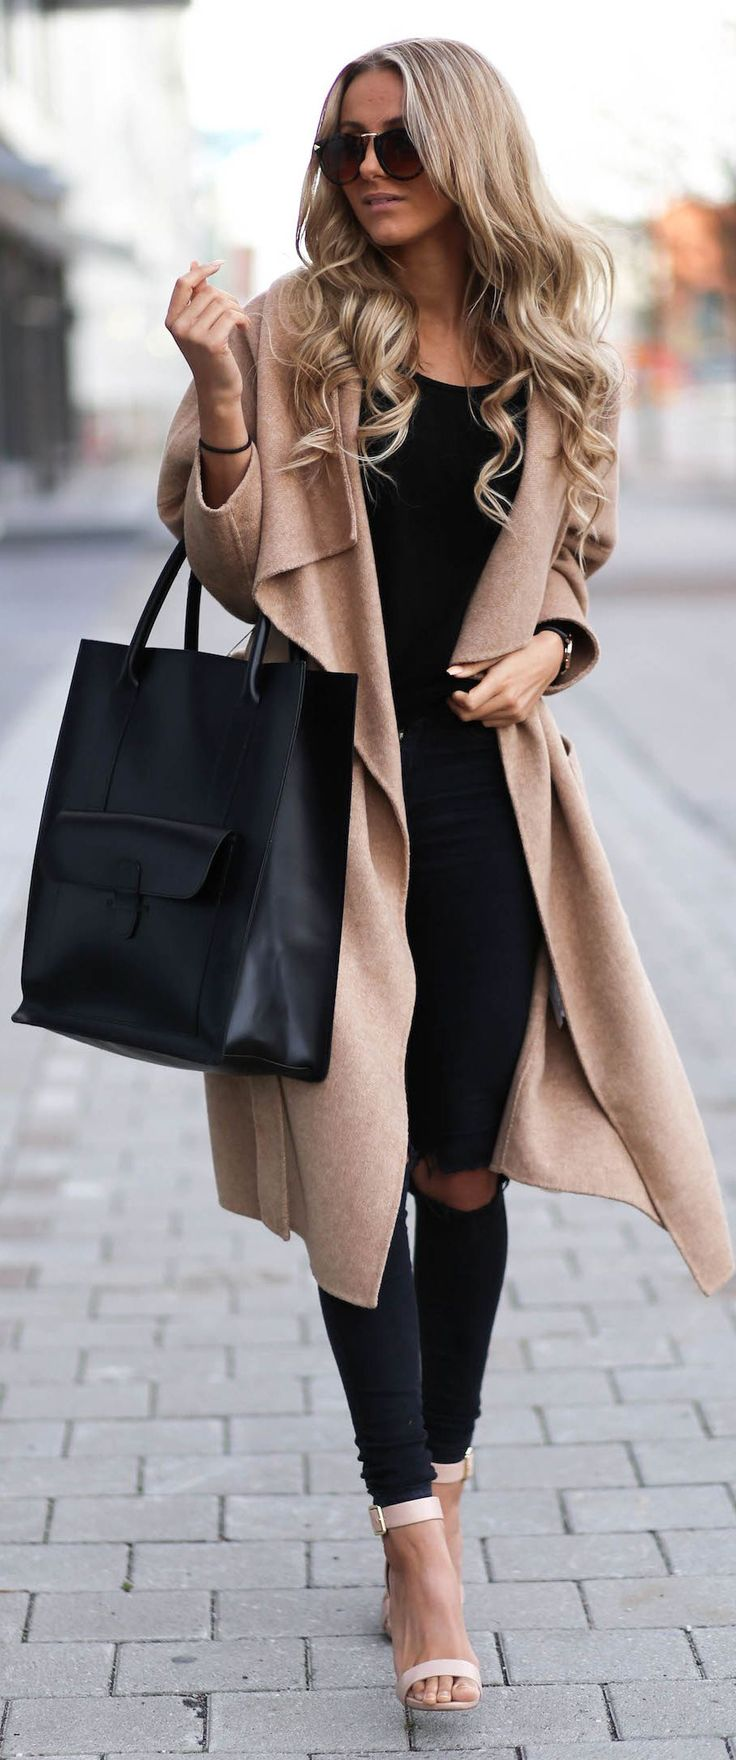 Street style black outfit and camel coat. #streetstyle #ParisComing Daily LookBook 11.28